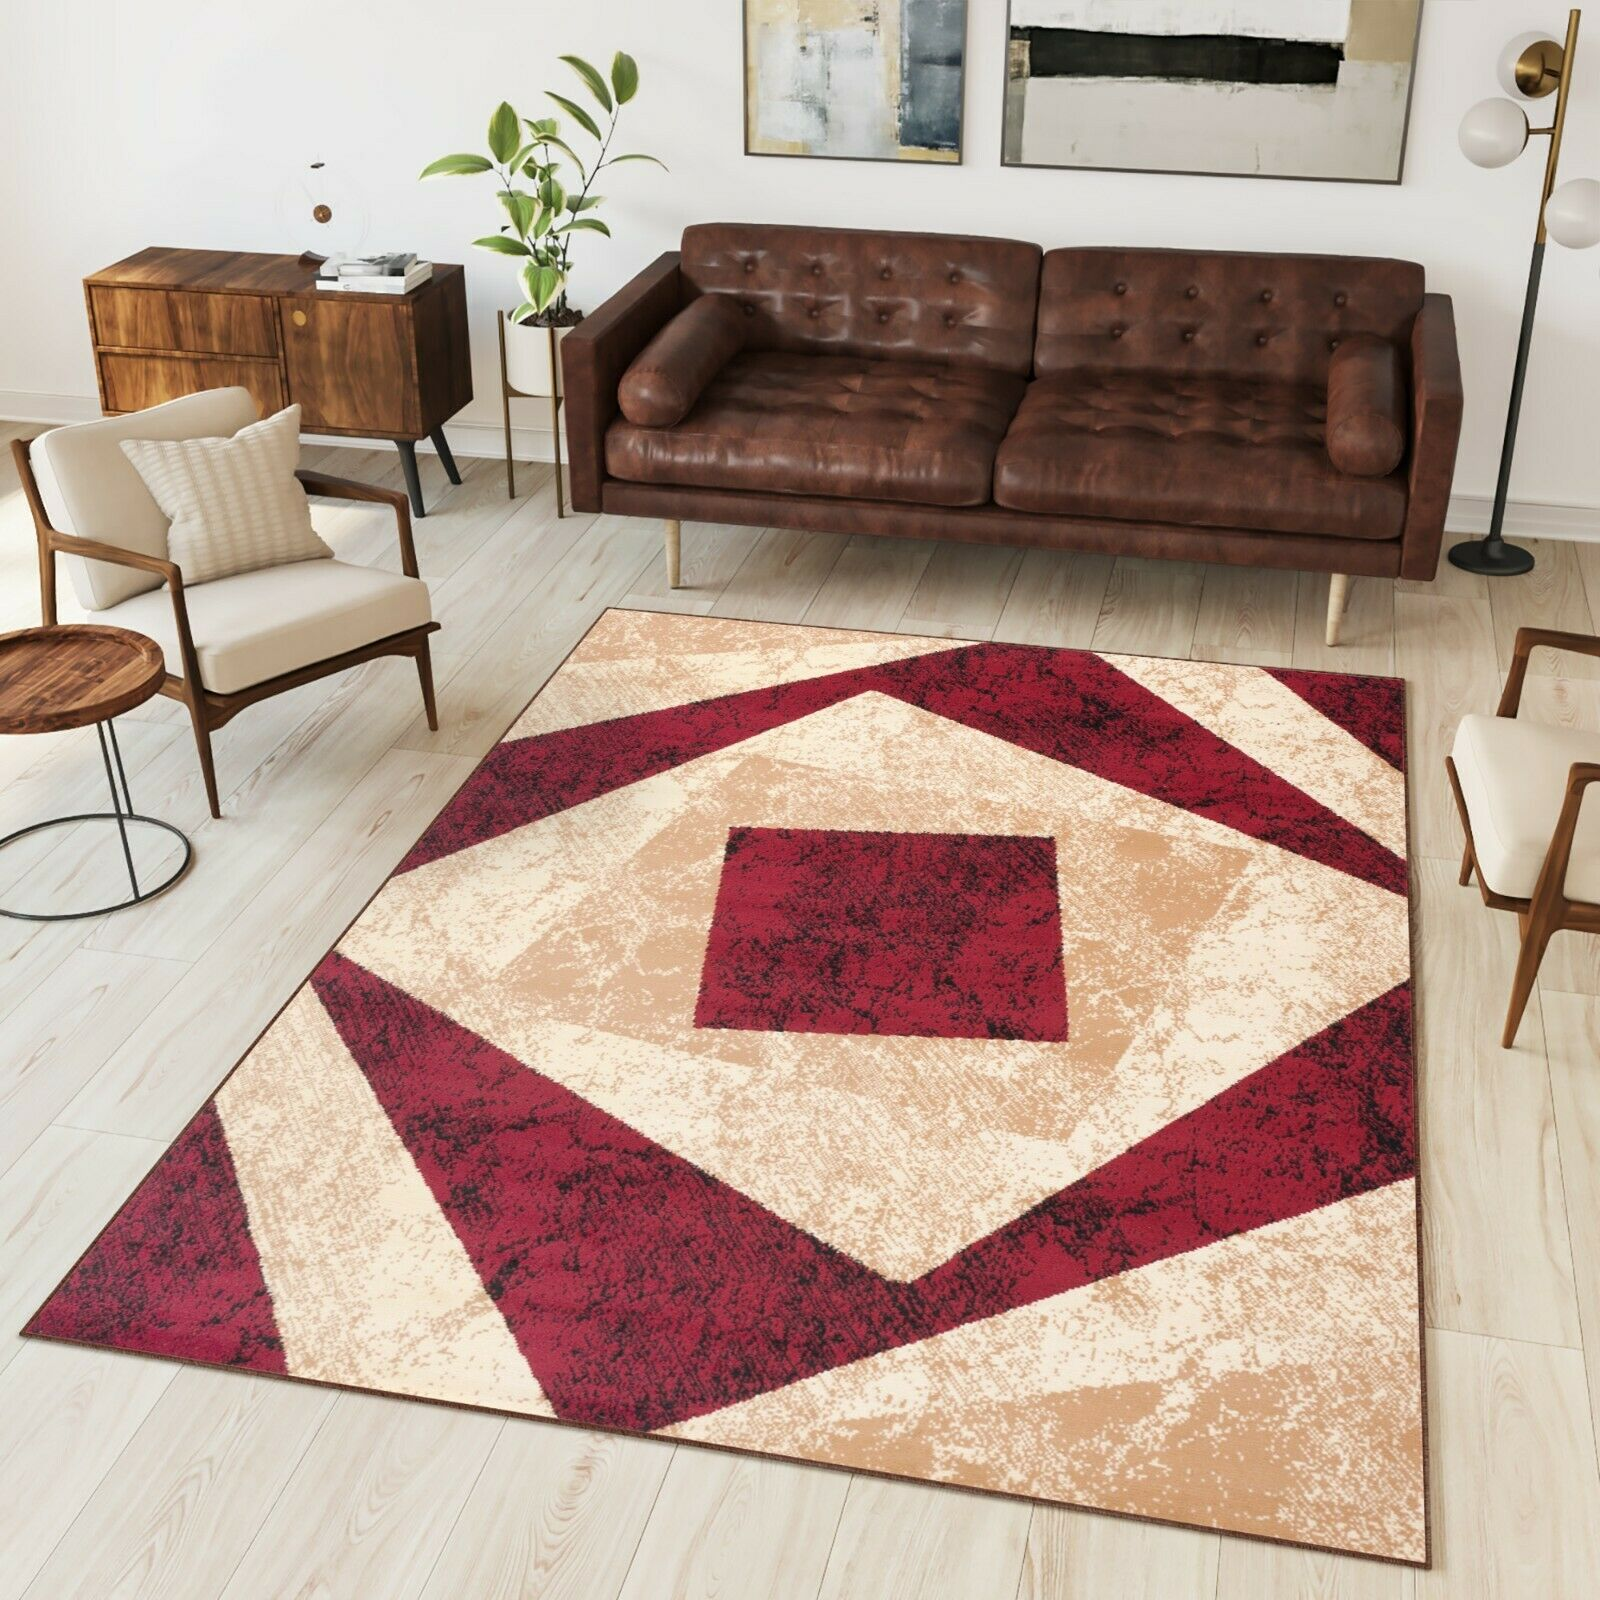 Designer Carpet Modern Trendy Short Pile Rug In Red Cream Marl Home Garden Rugs Carpets